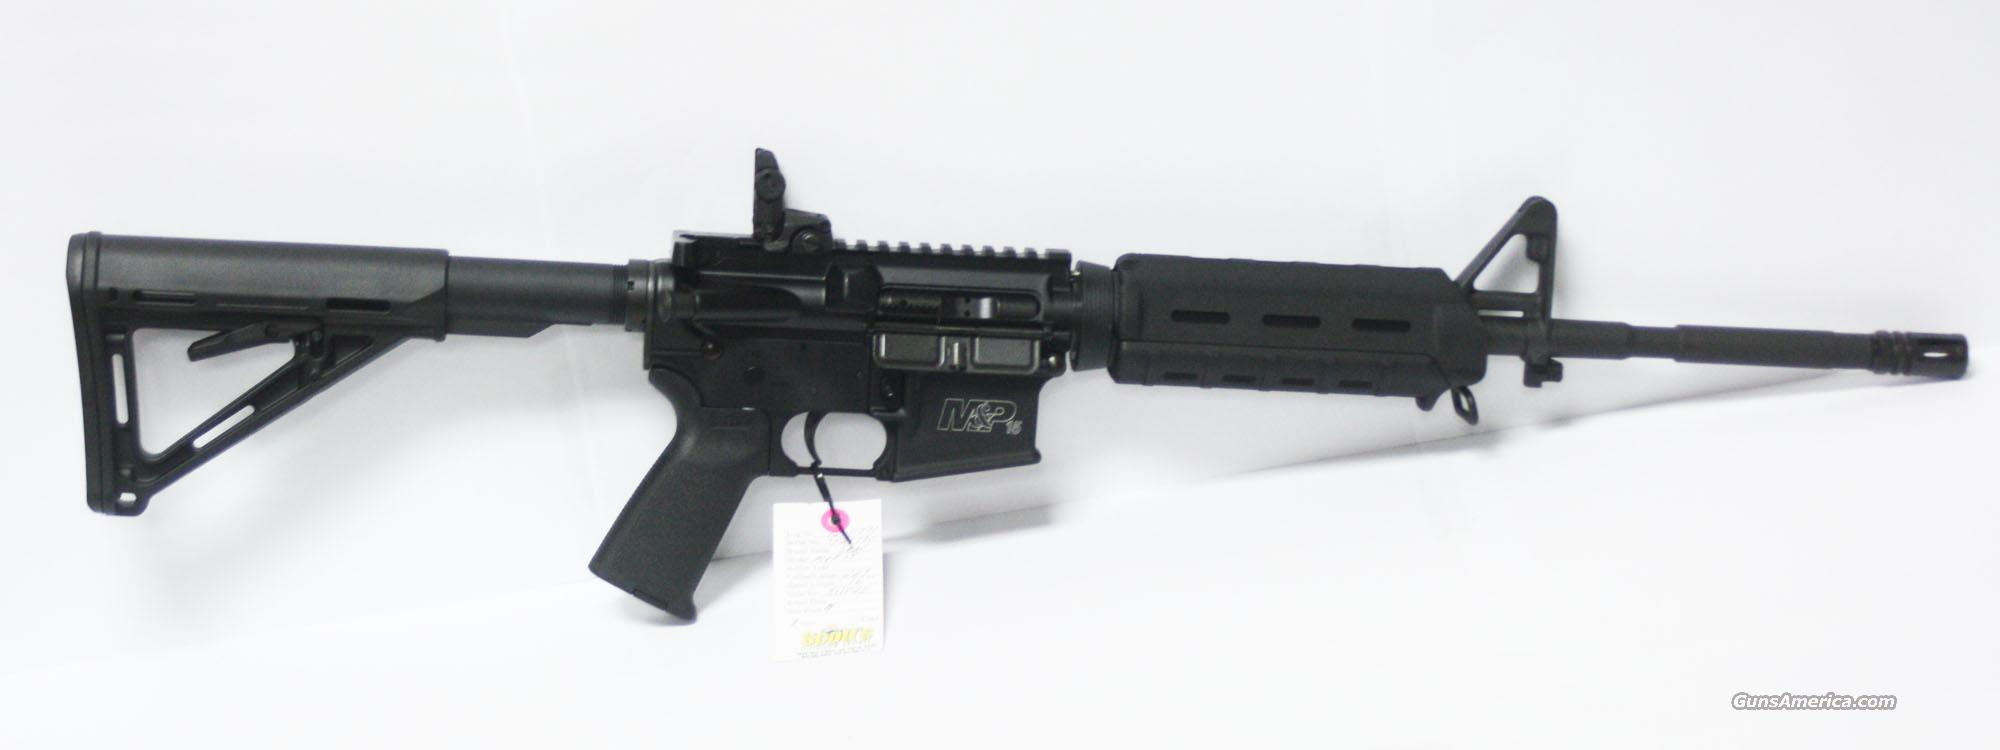 "SMITH & WESSON M&P 15 MOE 223 16"" 30+1 #811020 NEW IN BOX  Guns > Rifles > Smith & Wesson Rifles > M&P"